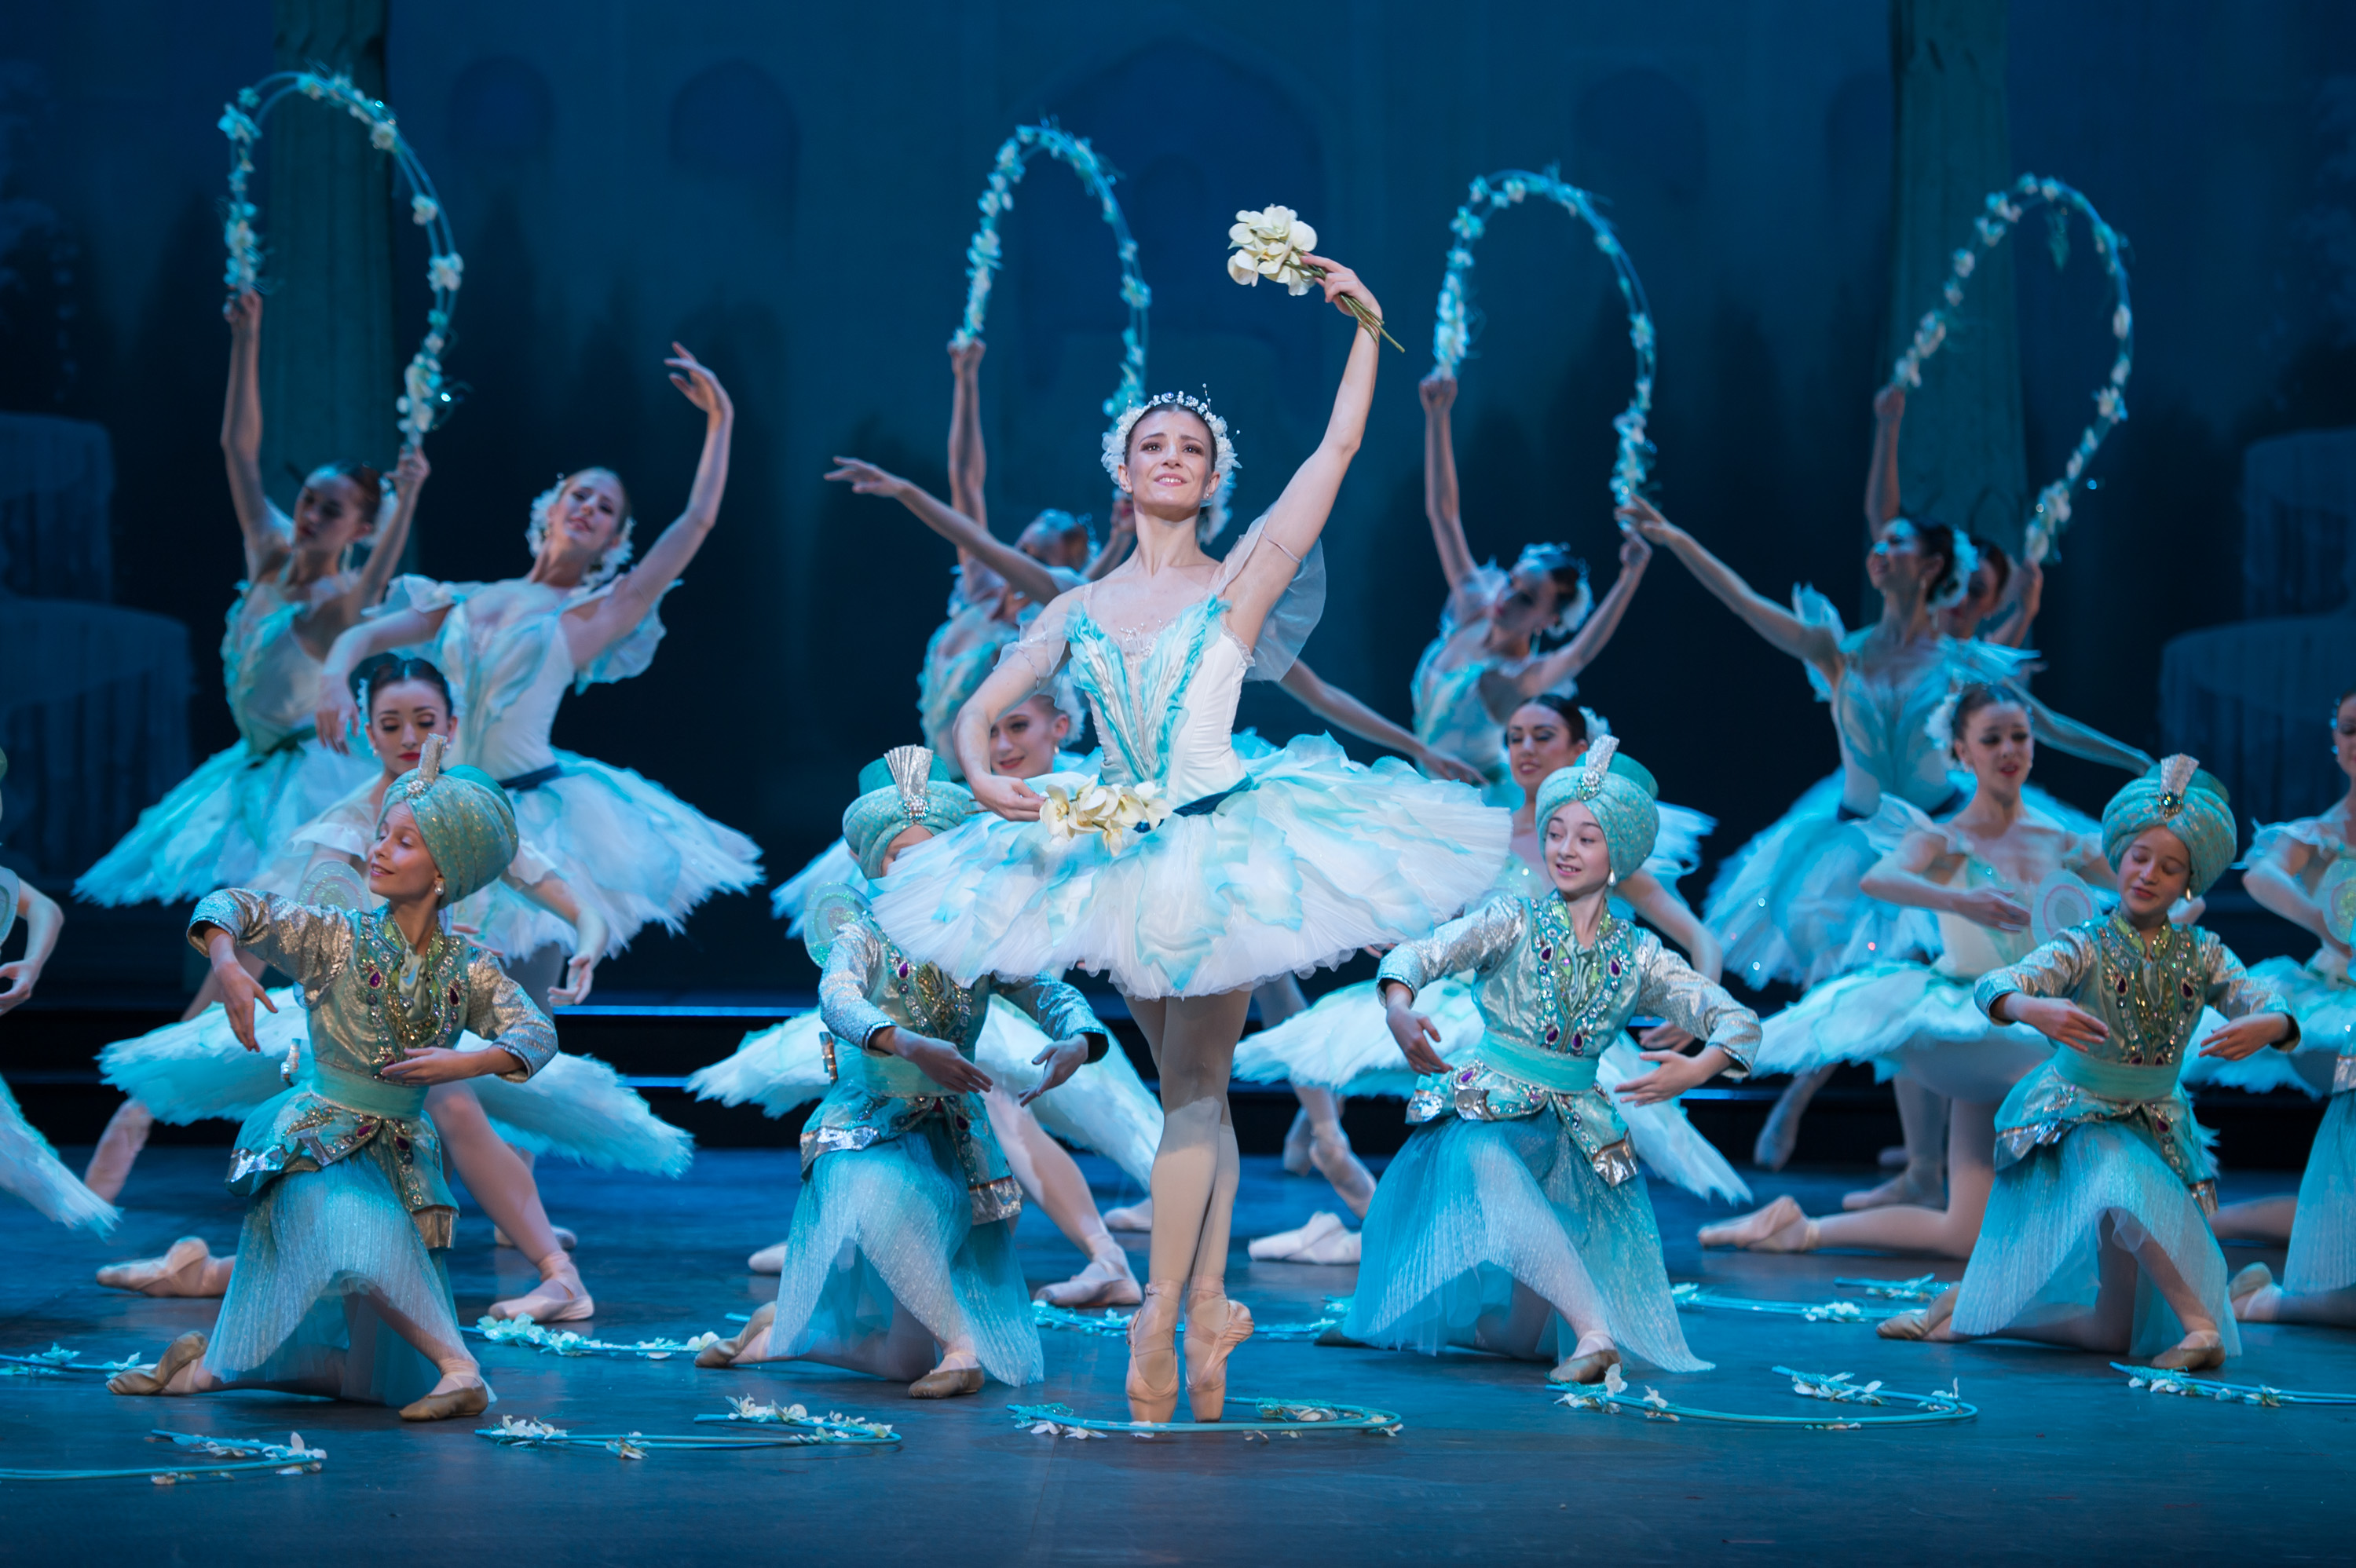 English National Ballet performing the world premiere of Le Corsaire. Alina Cojocaru standing en pointe centre stage, dressed in a white and mint green tutu costume, with artists of English National Ballet holding garlands of flowers in the background.